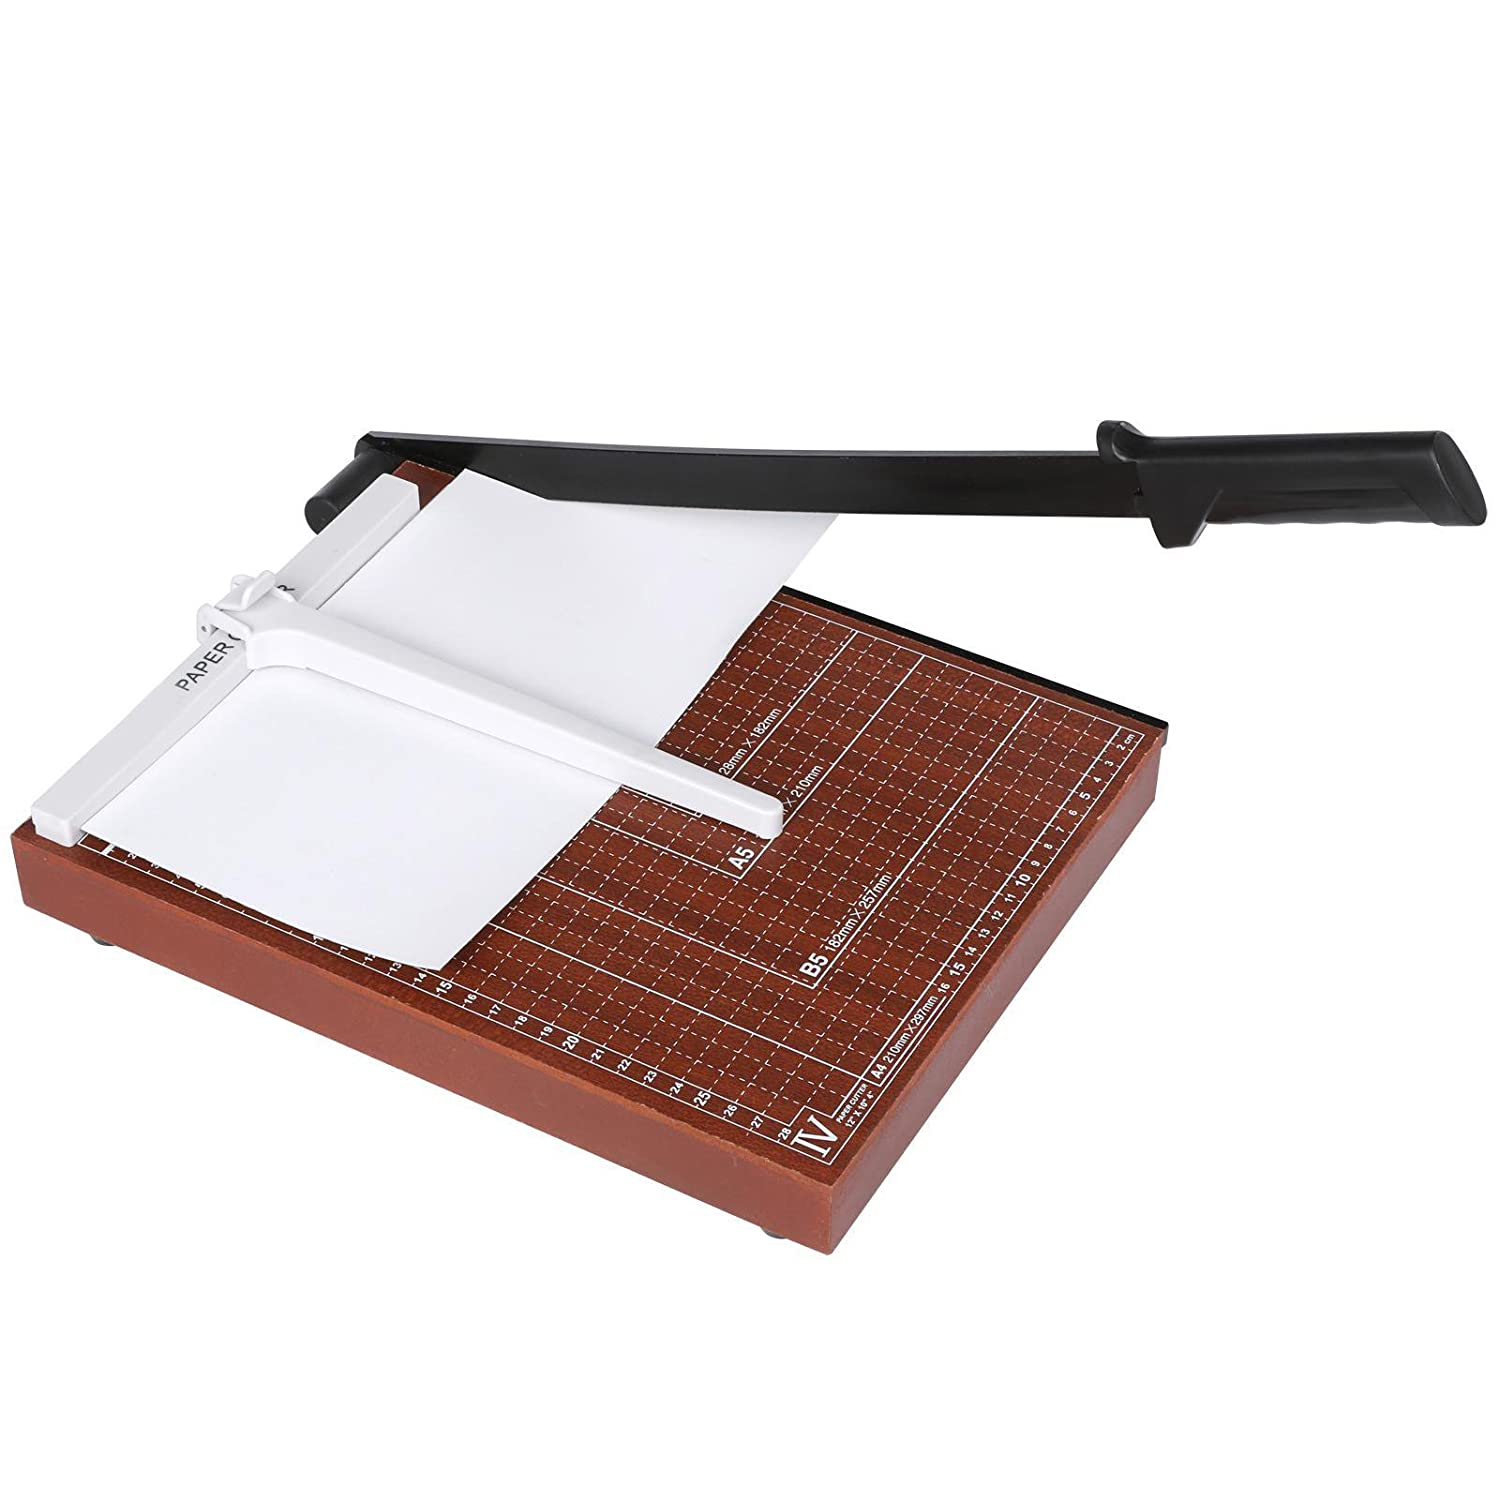 Professional Wood A4 Paper Cutter, Office Home Titanium Scrapbooking Trimmer Scrap Book Desk Tops Machine Cosway